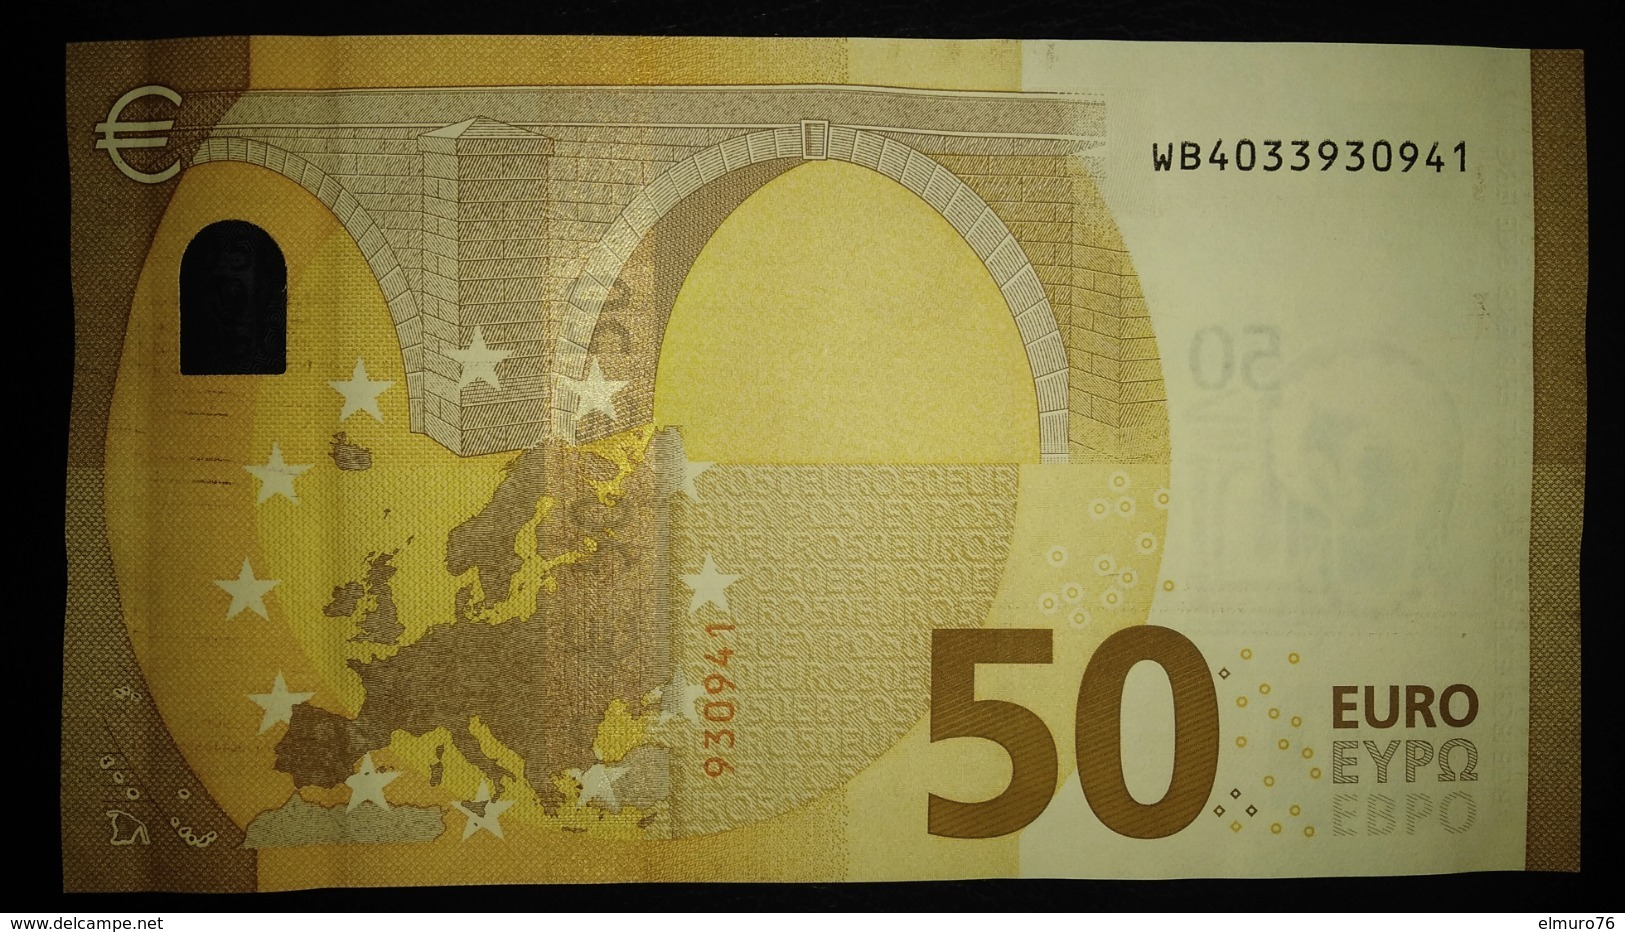 50 EURO W014D4 DRAGHI Germany Serie WB Perfect UNC - EURO